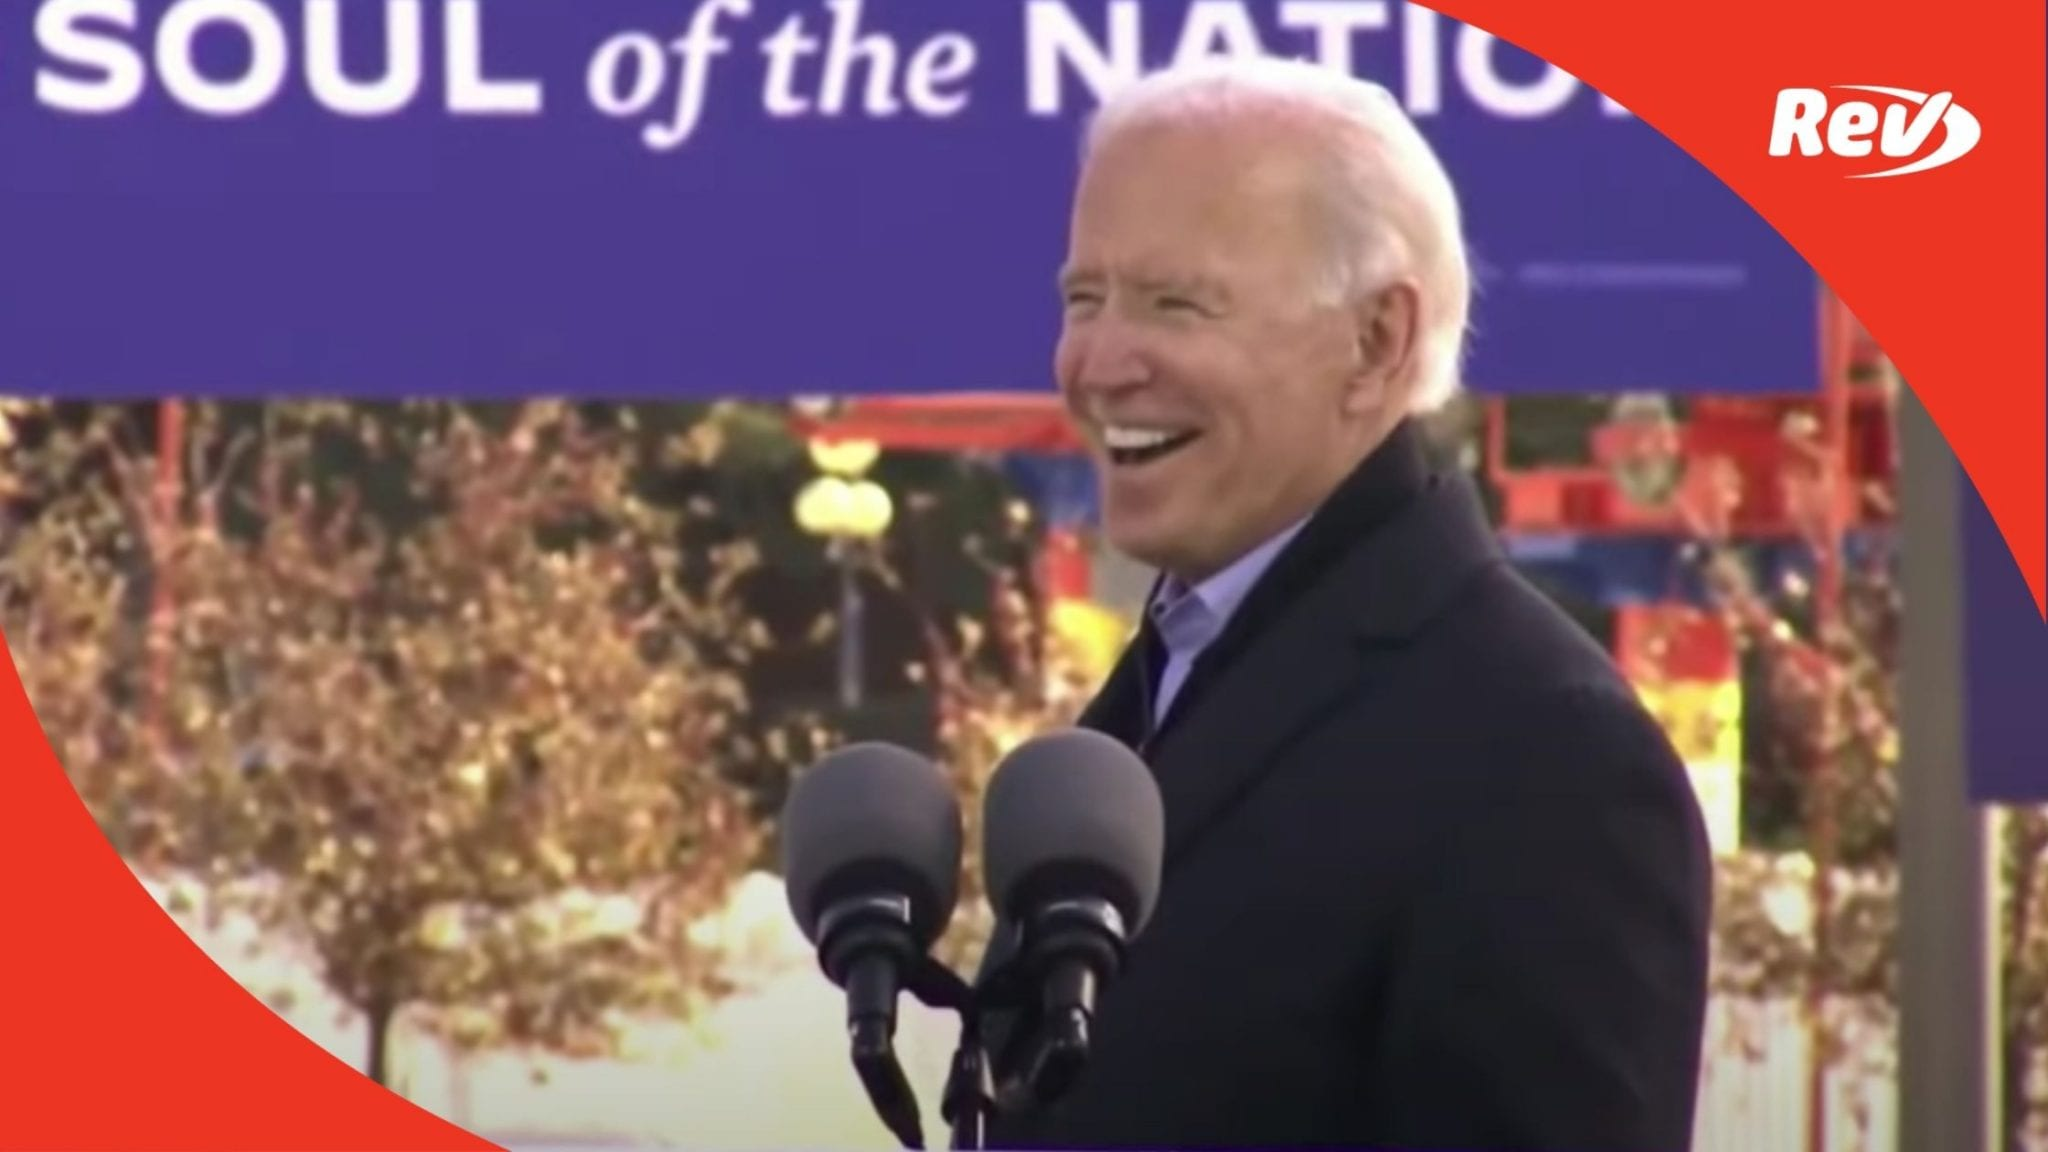 Joe Biden Campaign Event Speech Transcript Des Moines, Iowa October 30